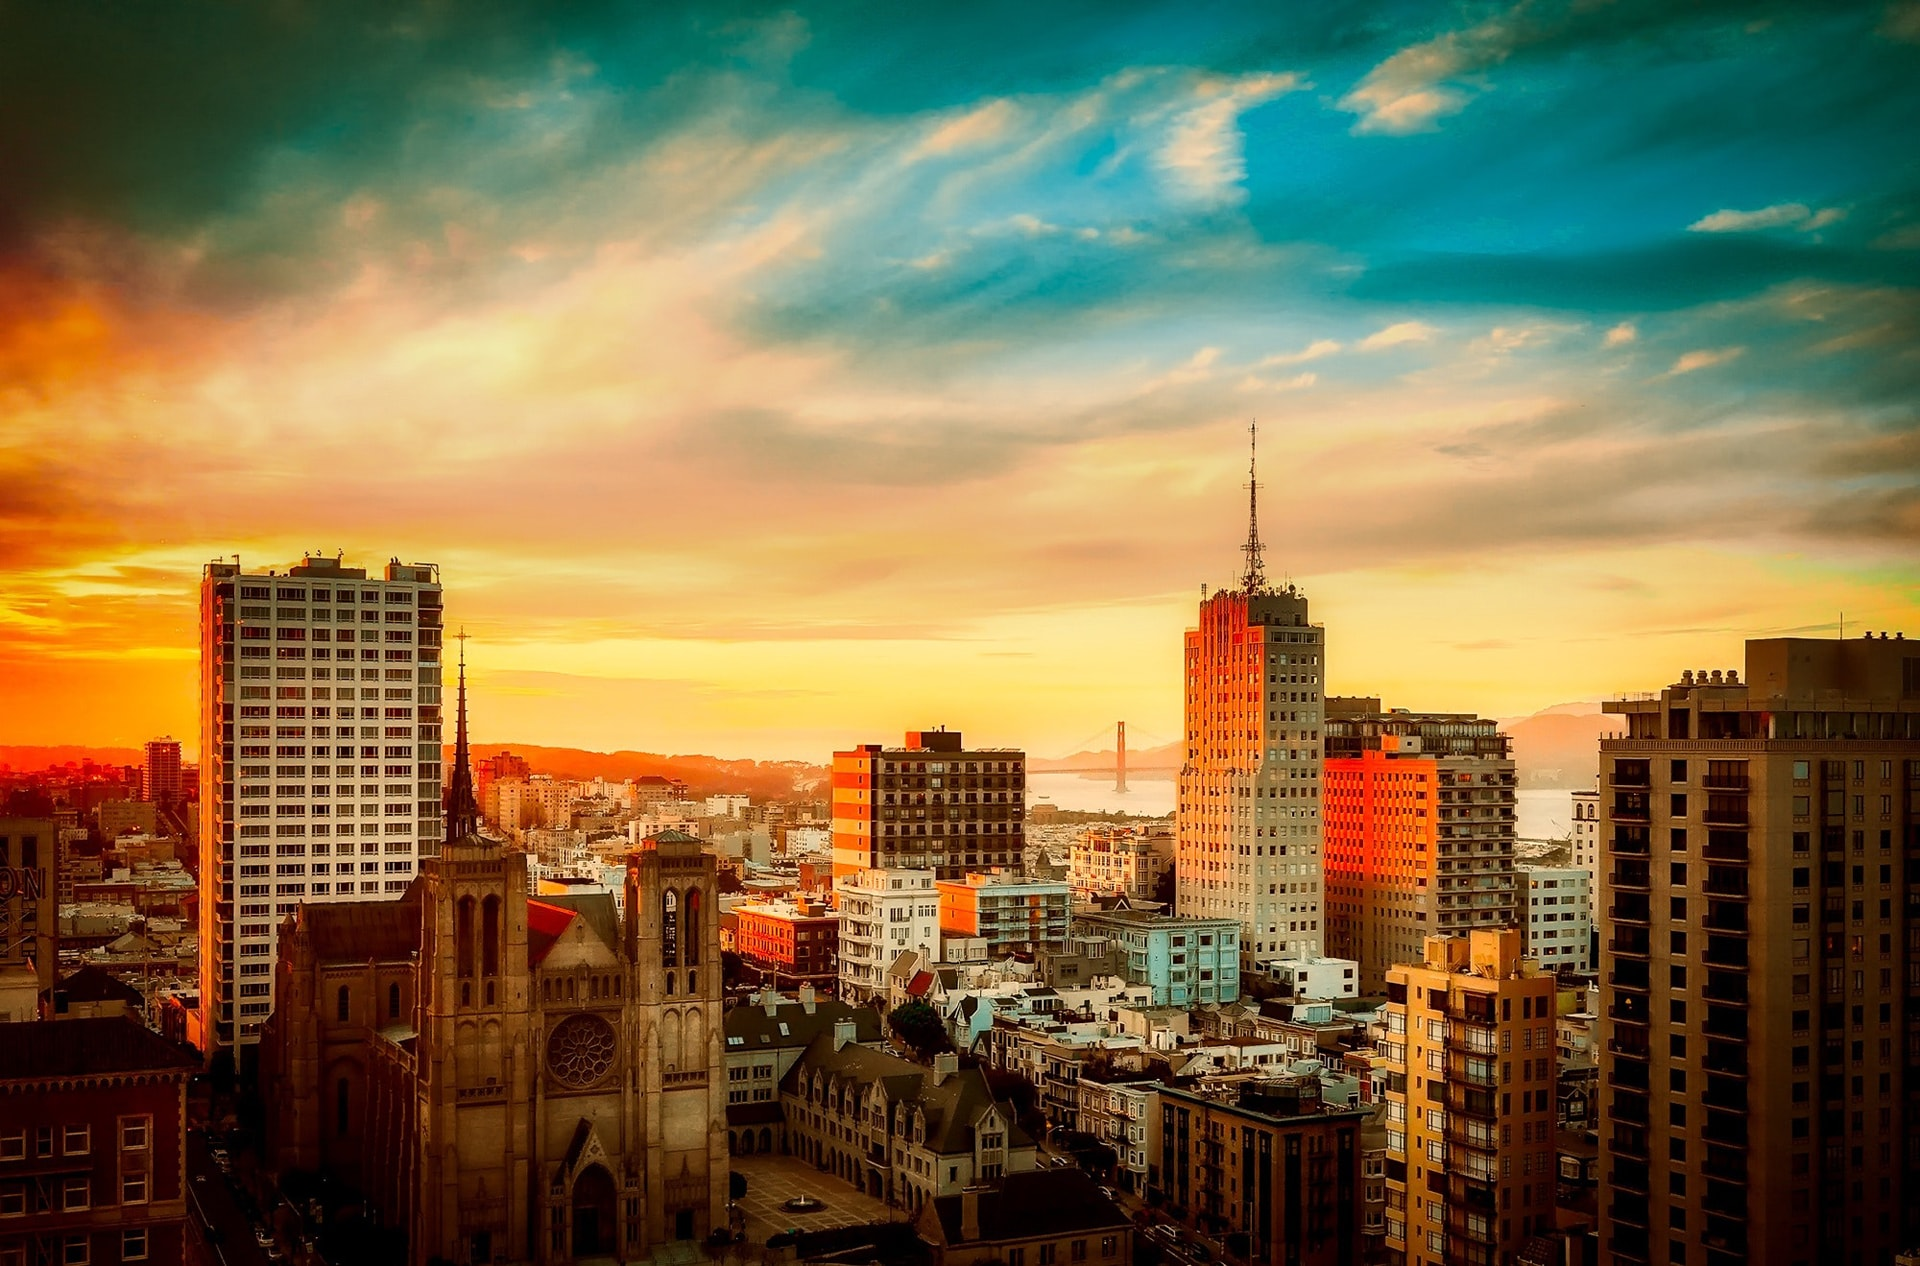 Golden state hospitality group - San Francisco